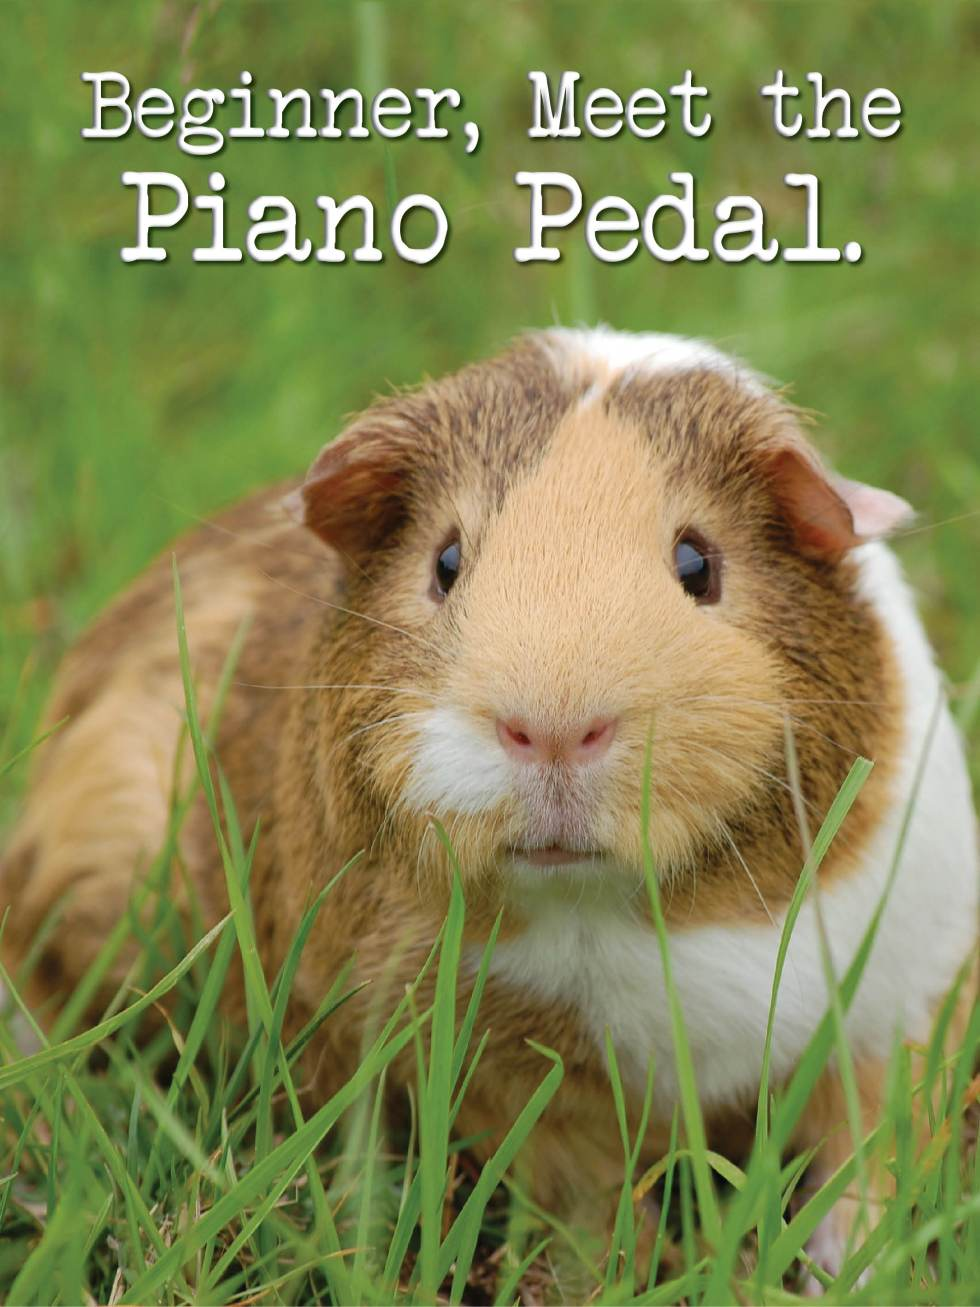 First introduction to the piano pedal